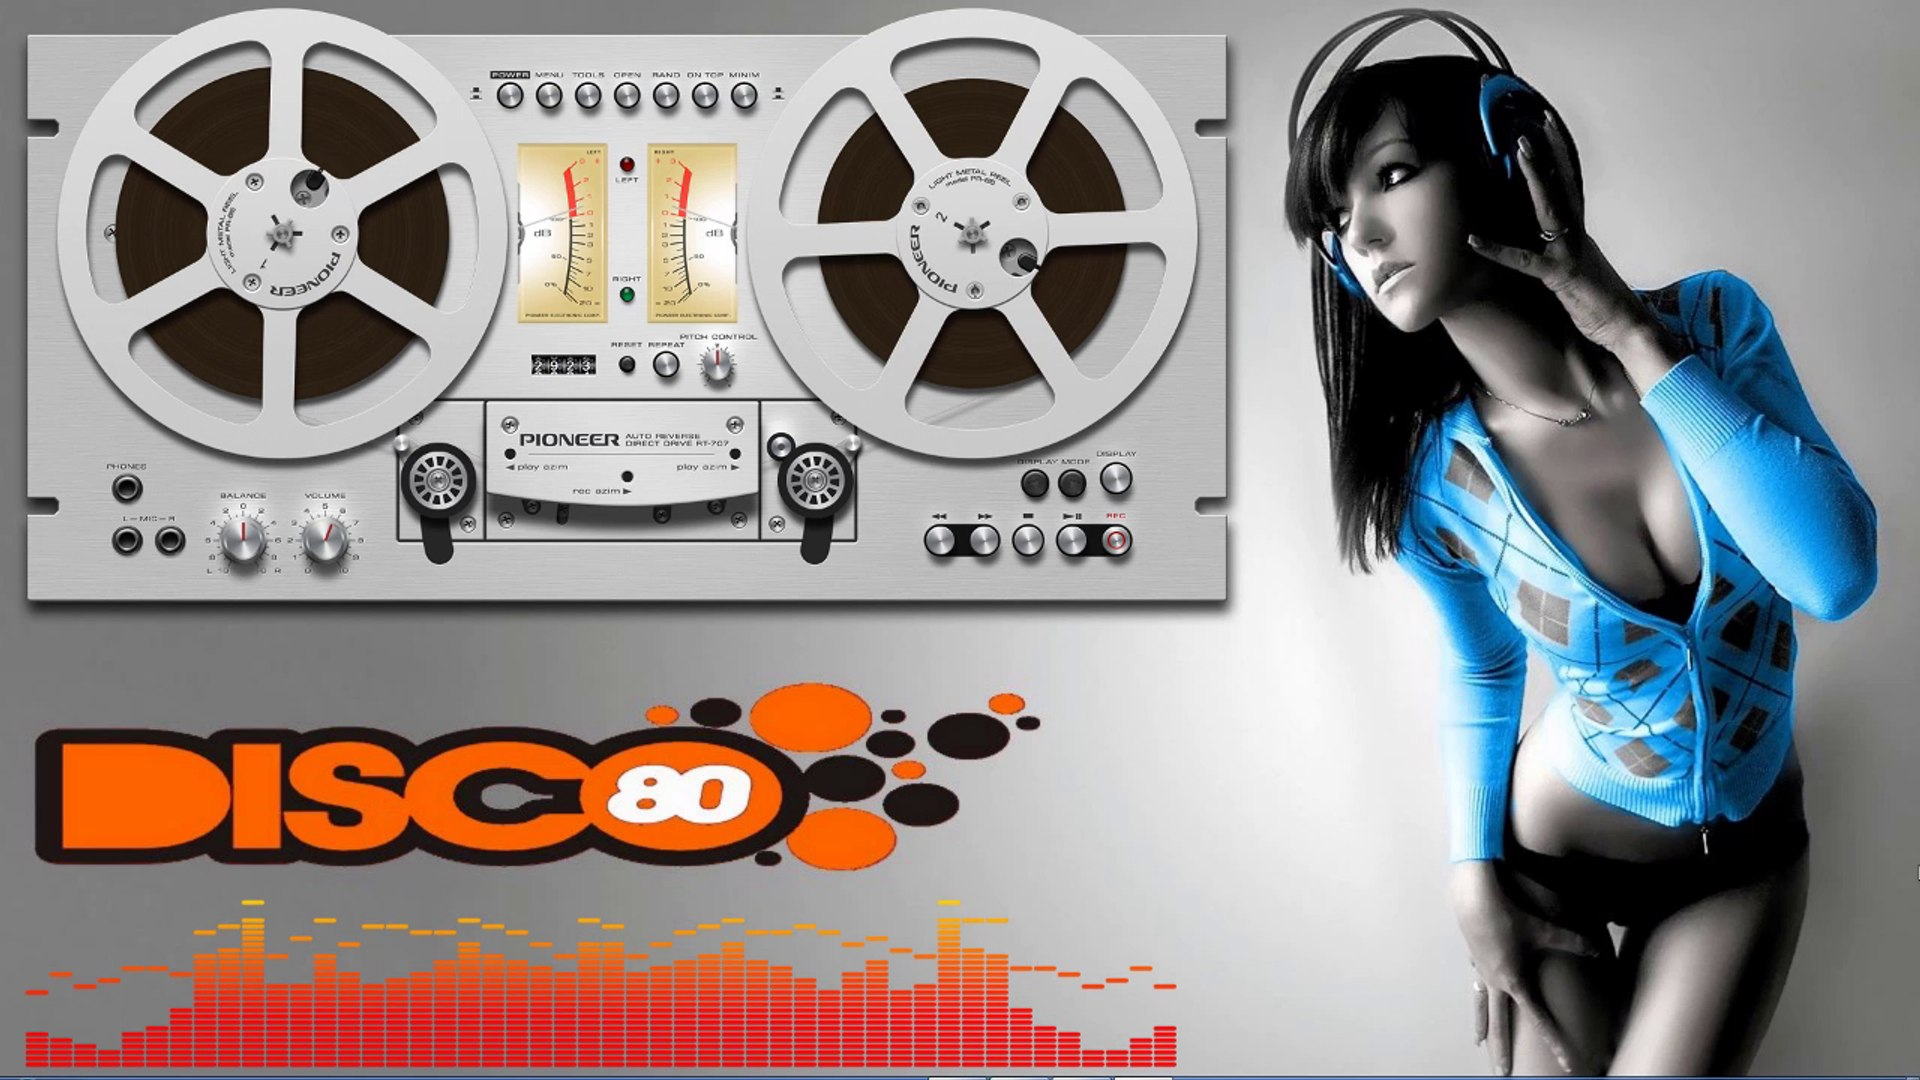 The Best italodisco 80's MIX Dance Compilation Remastered Sound